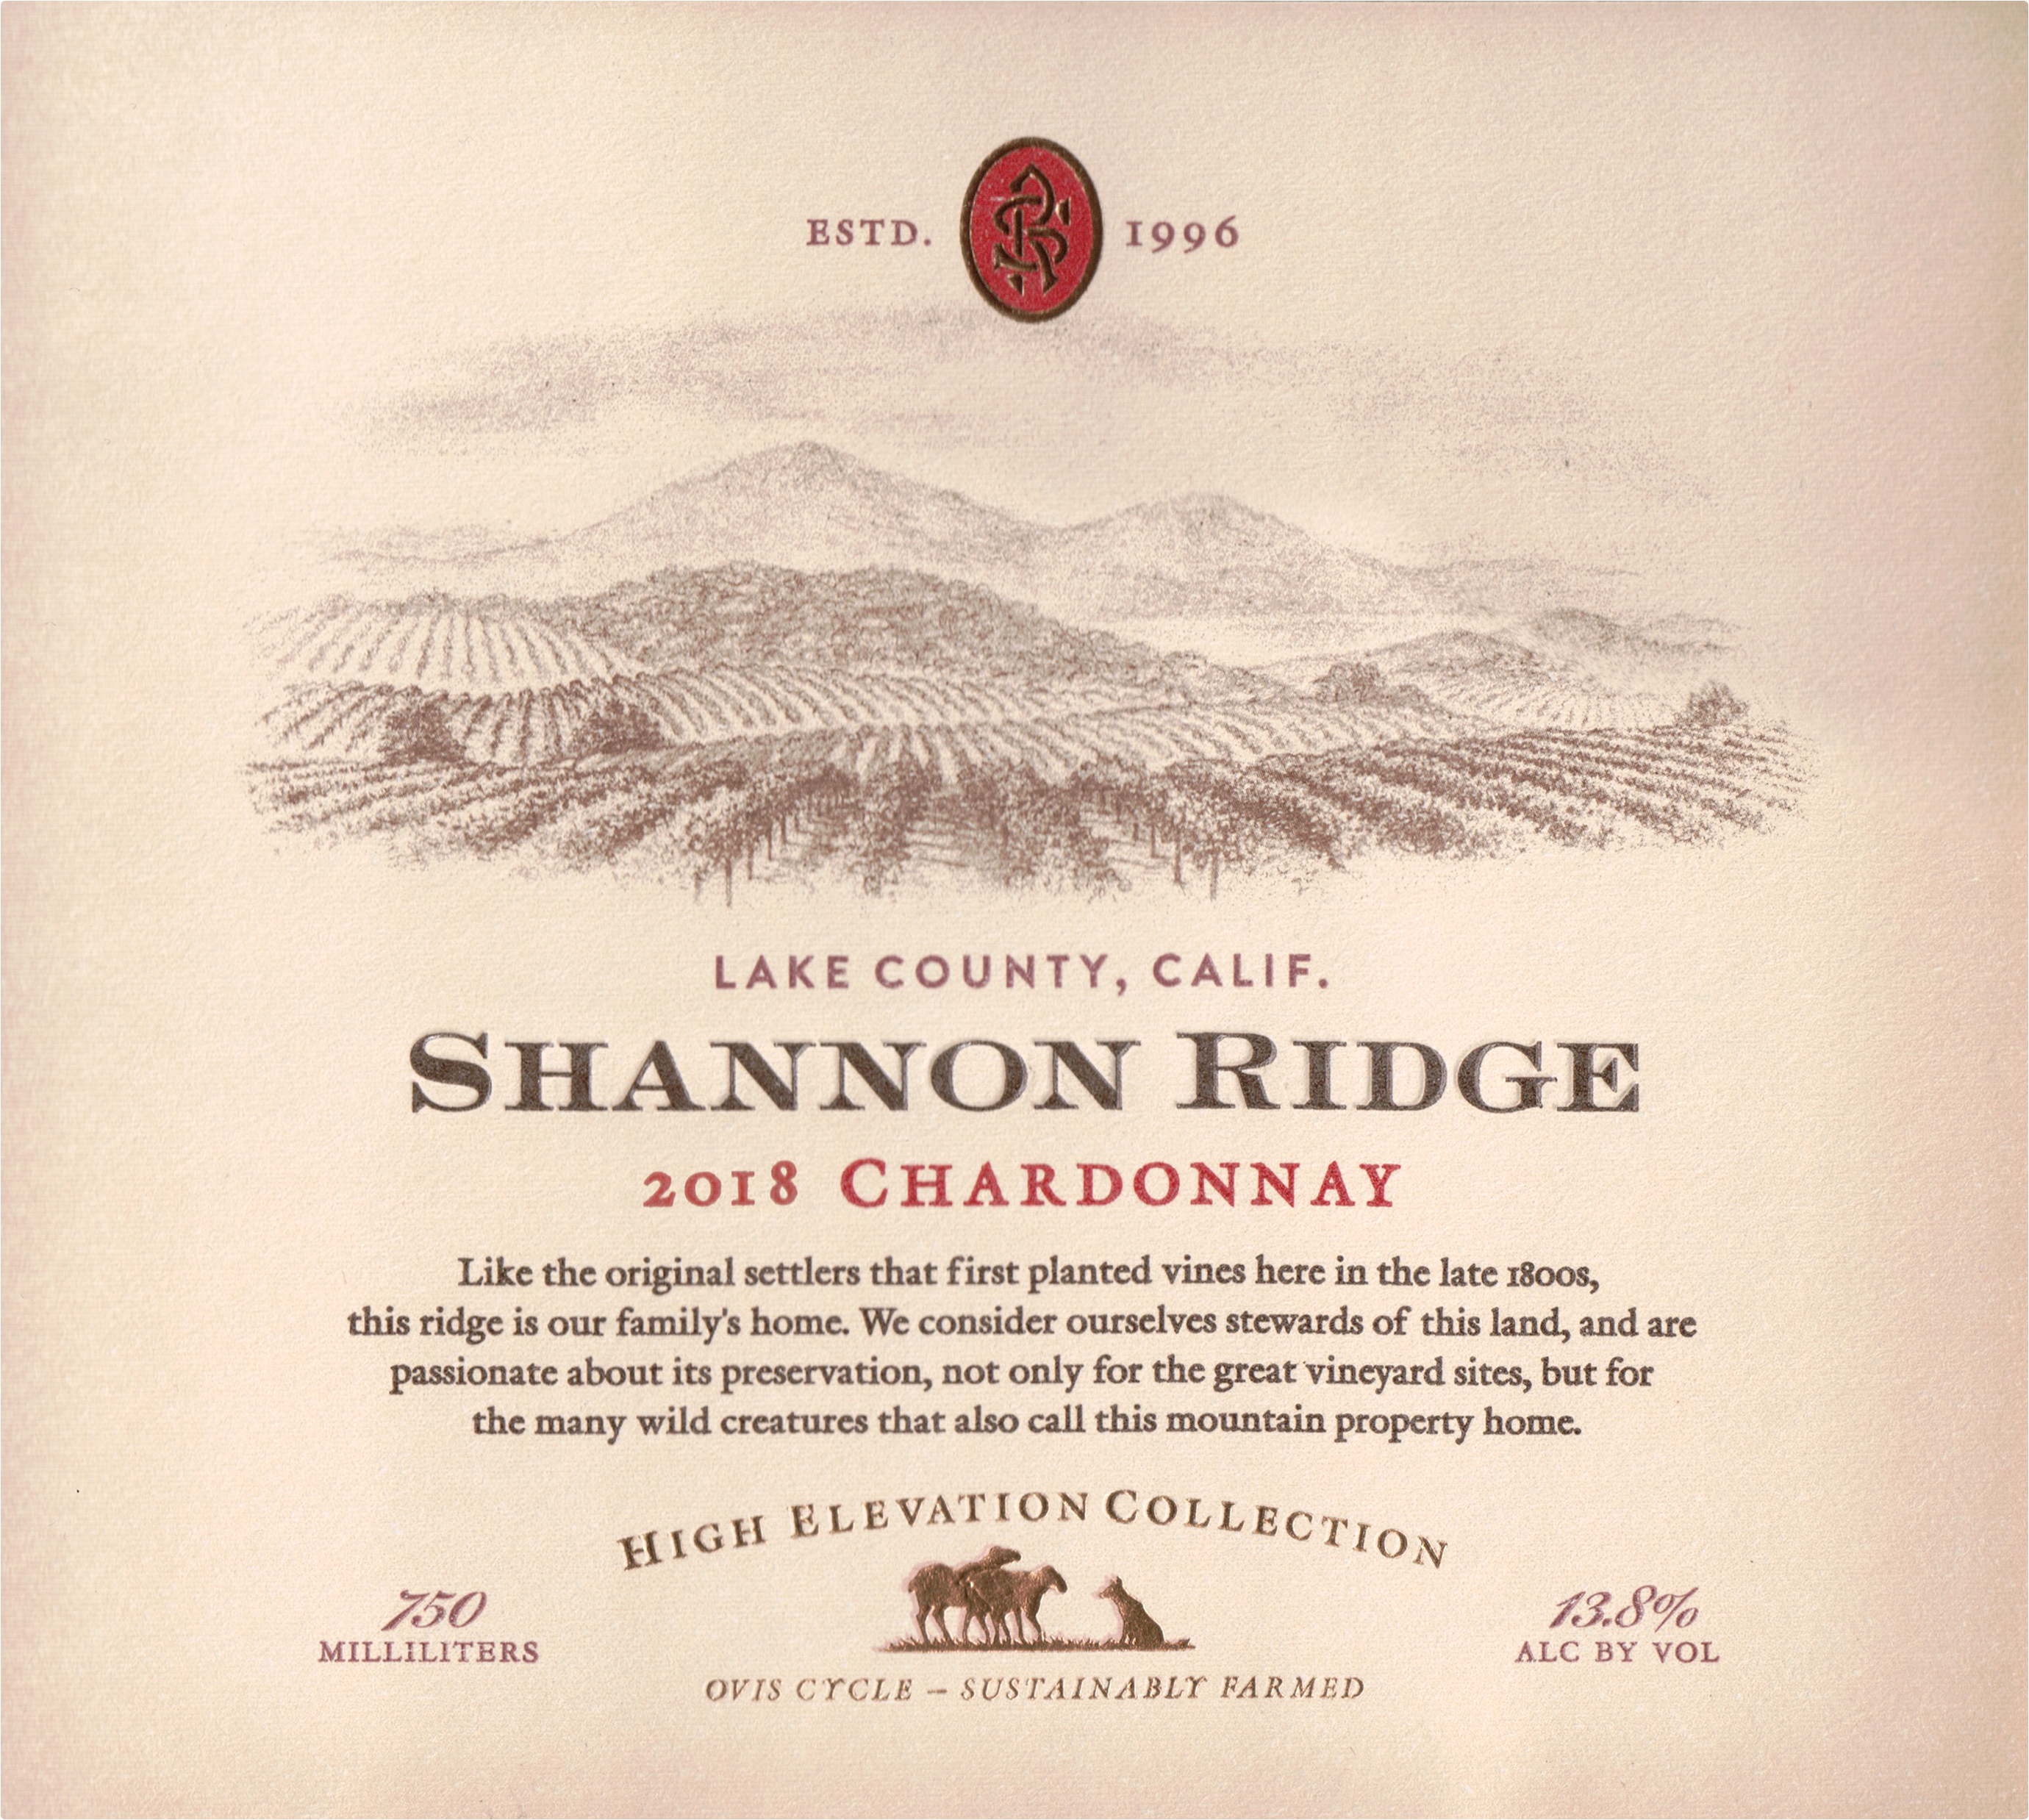 Shannon Ridge High Elevation Chardonnay 2018